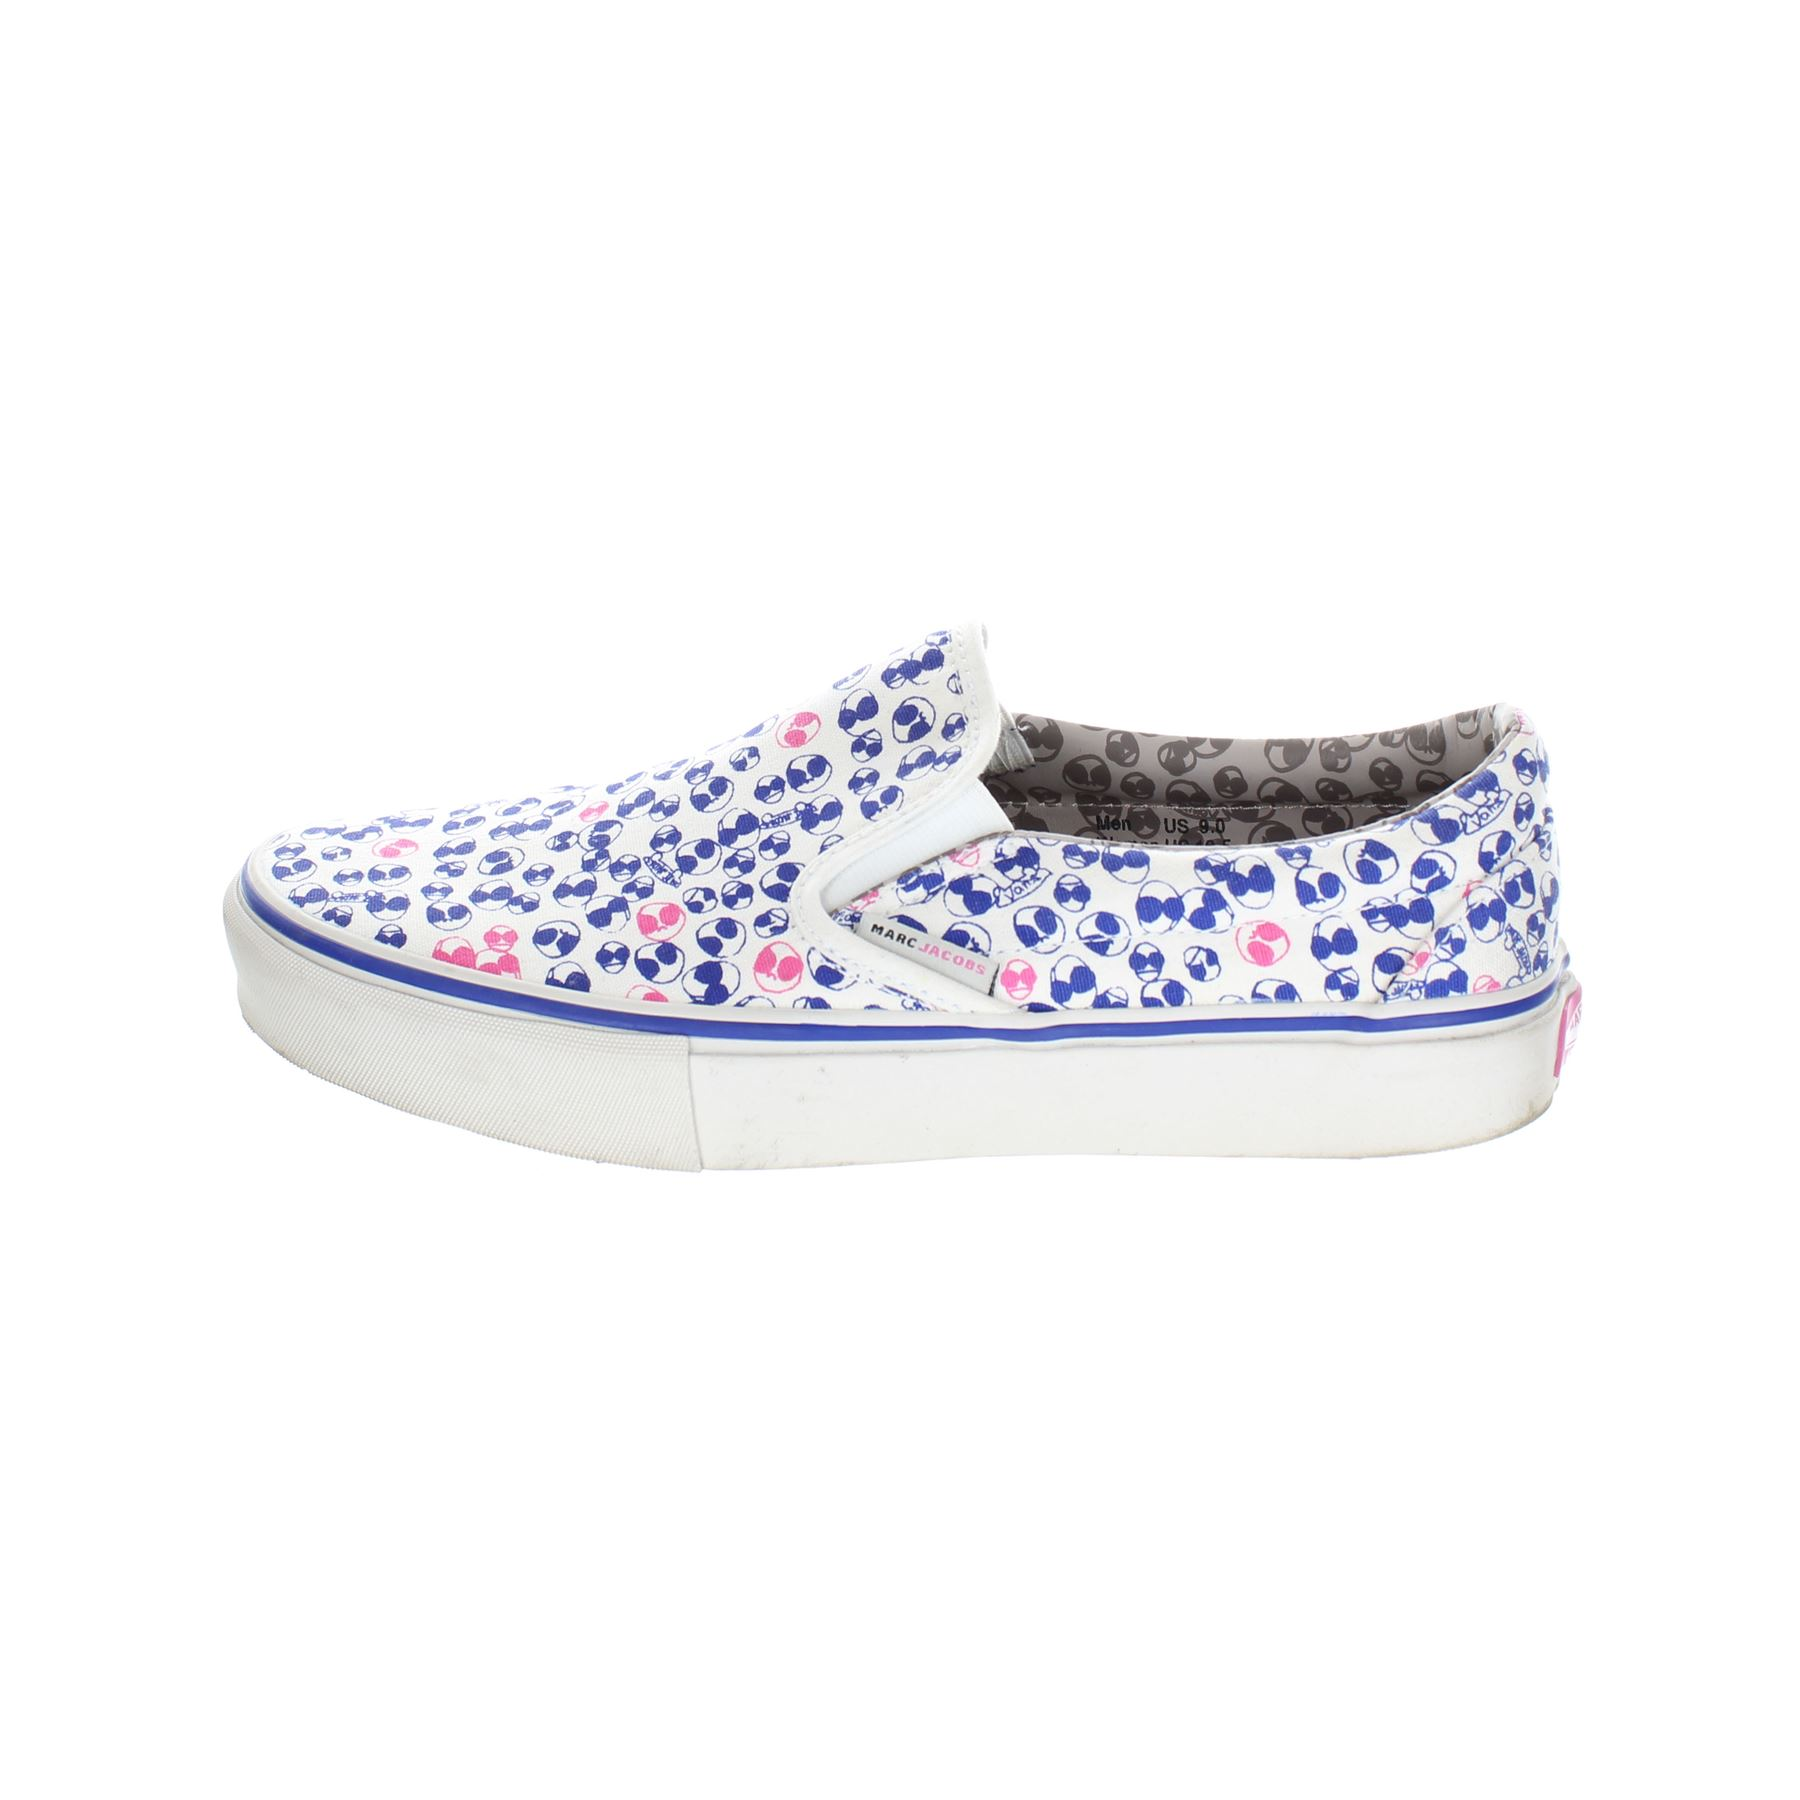 ac348b2d6fca45 Details about MARC JACOBS X VANS White Cloth Slip-On Shoes